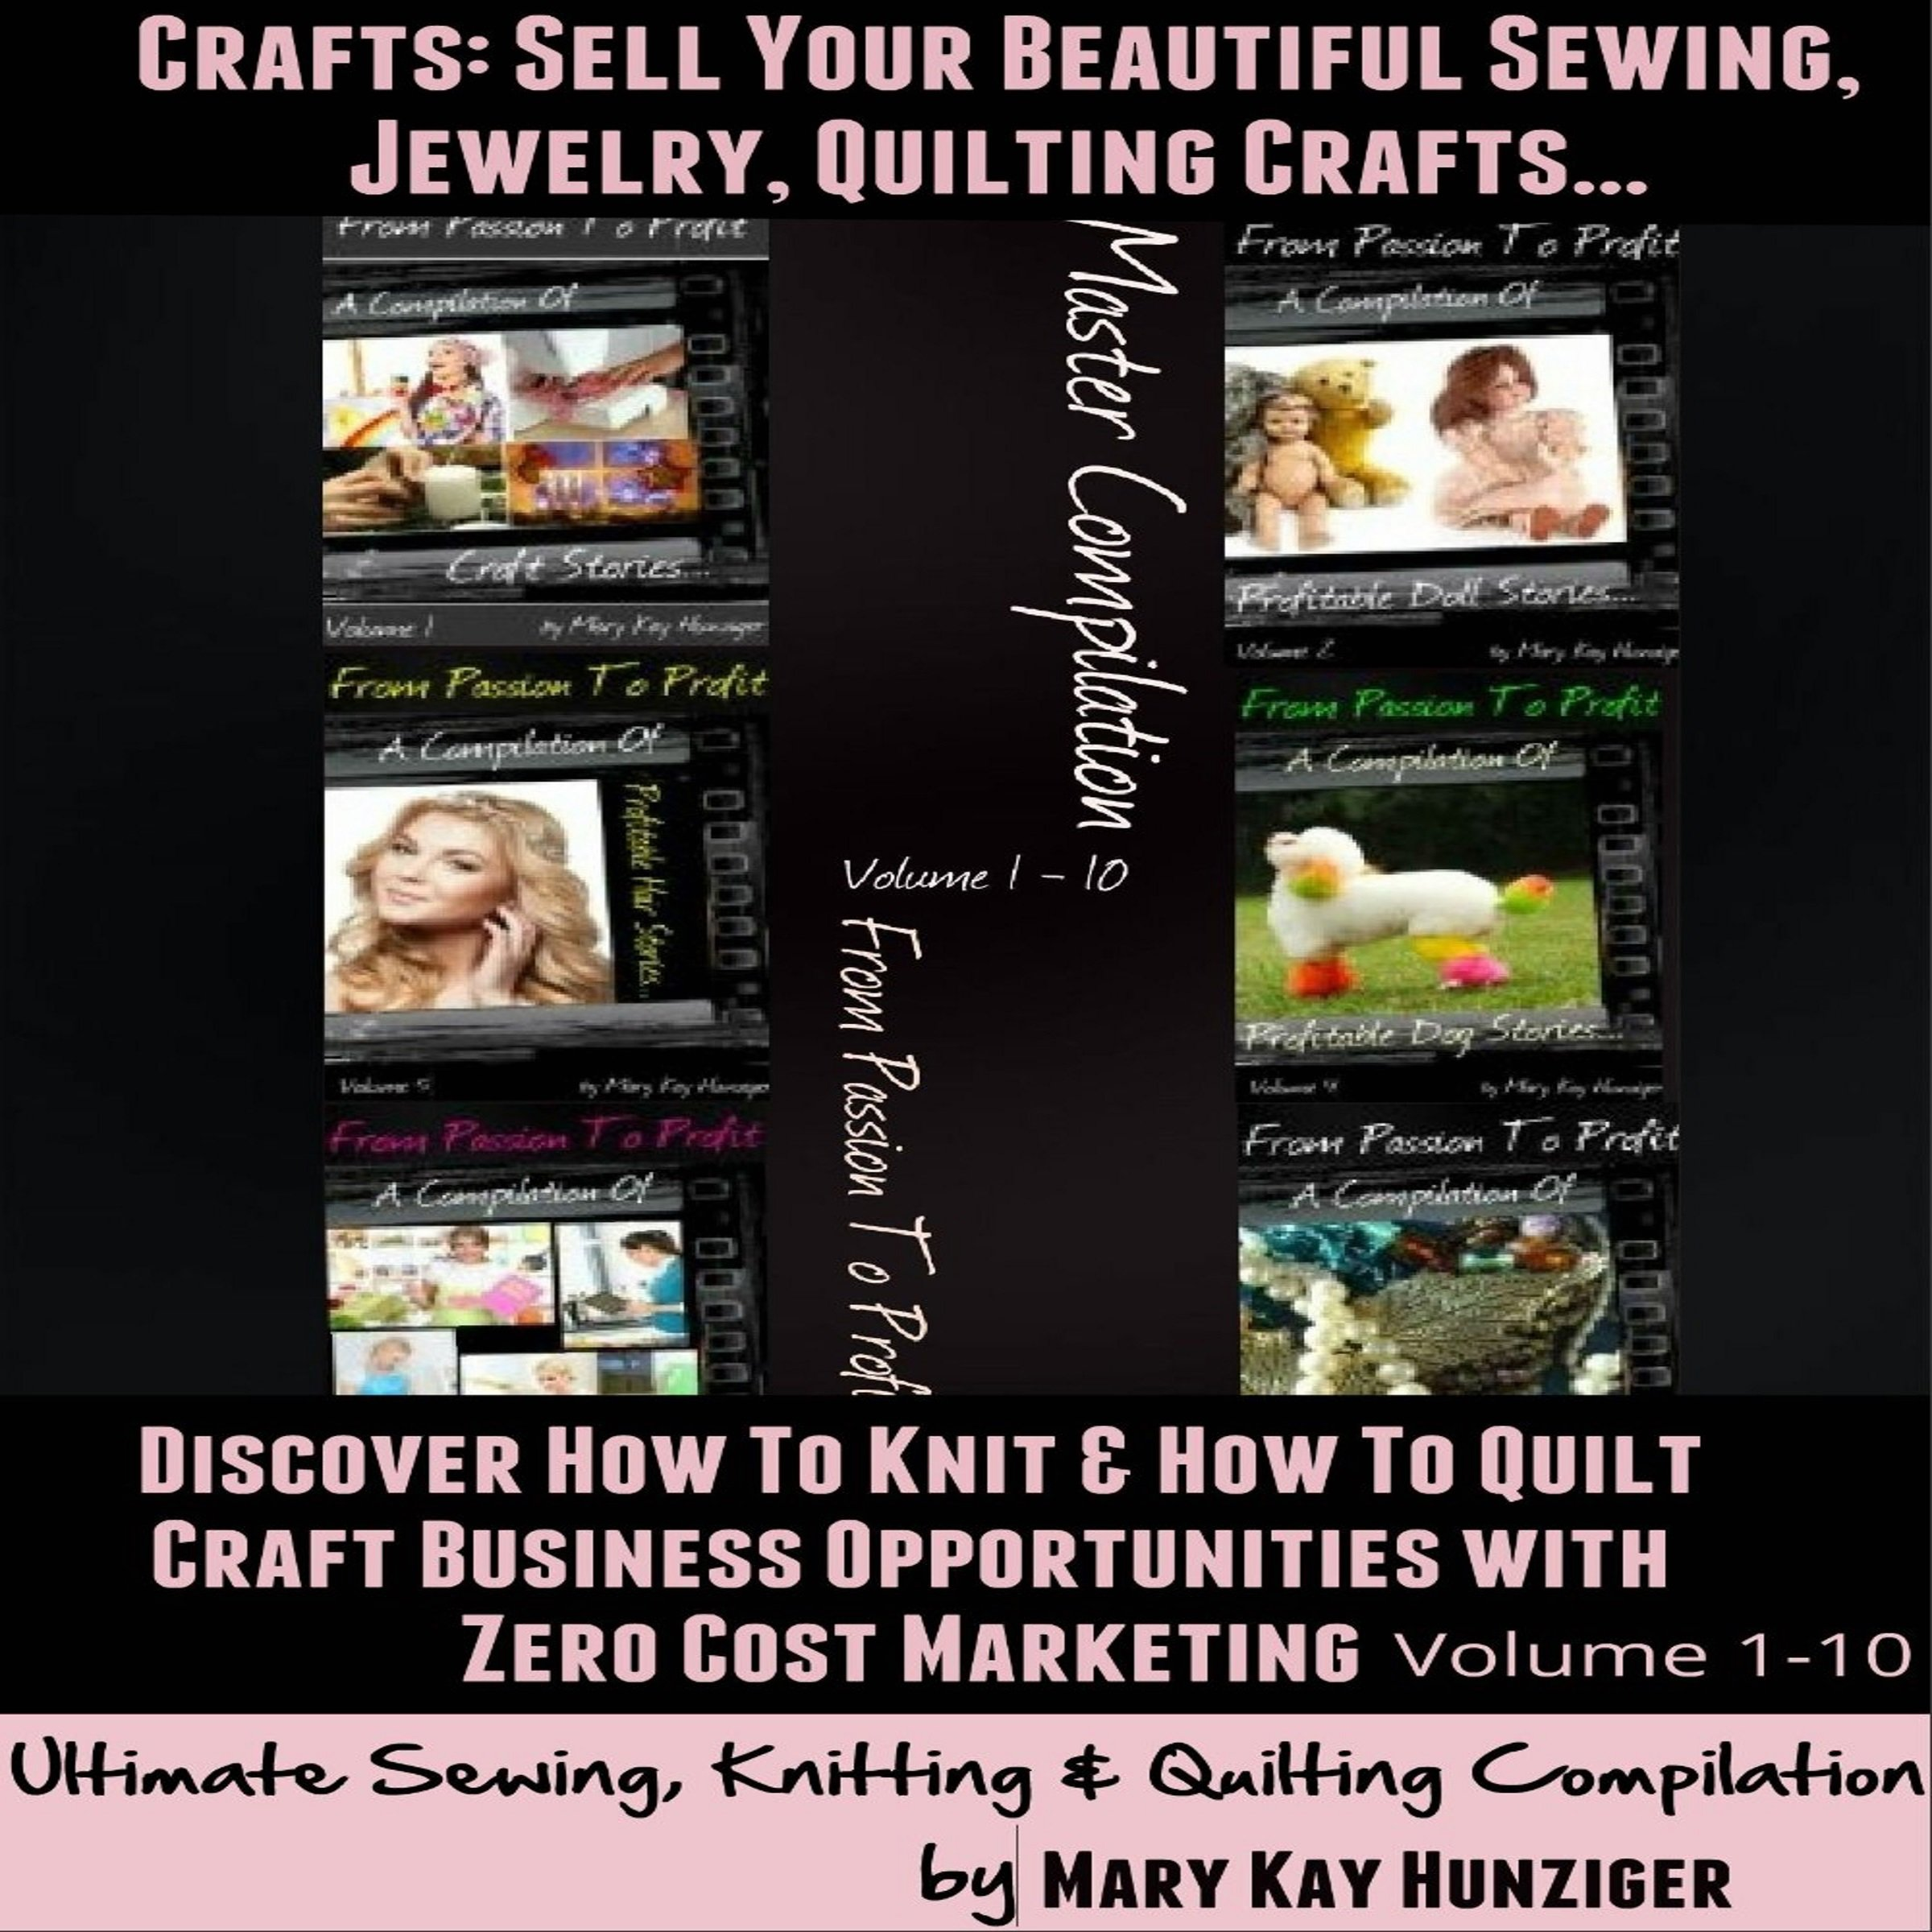 Crafts: Sell Your Beautiful Sewing, Jewelry, Quilting Crafts: Discover How to Knit & How to Quilt Craft Business Opportunities with Zero Cost Marketing